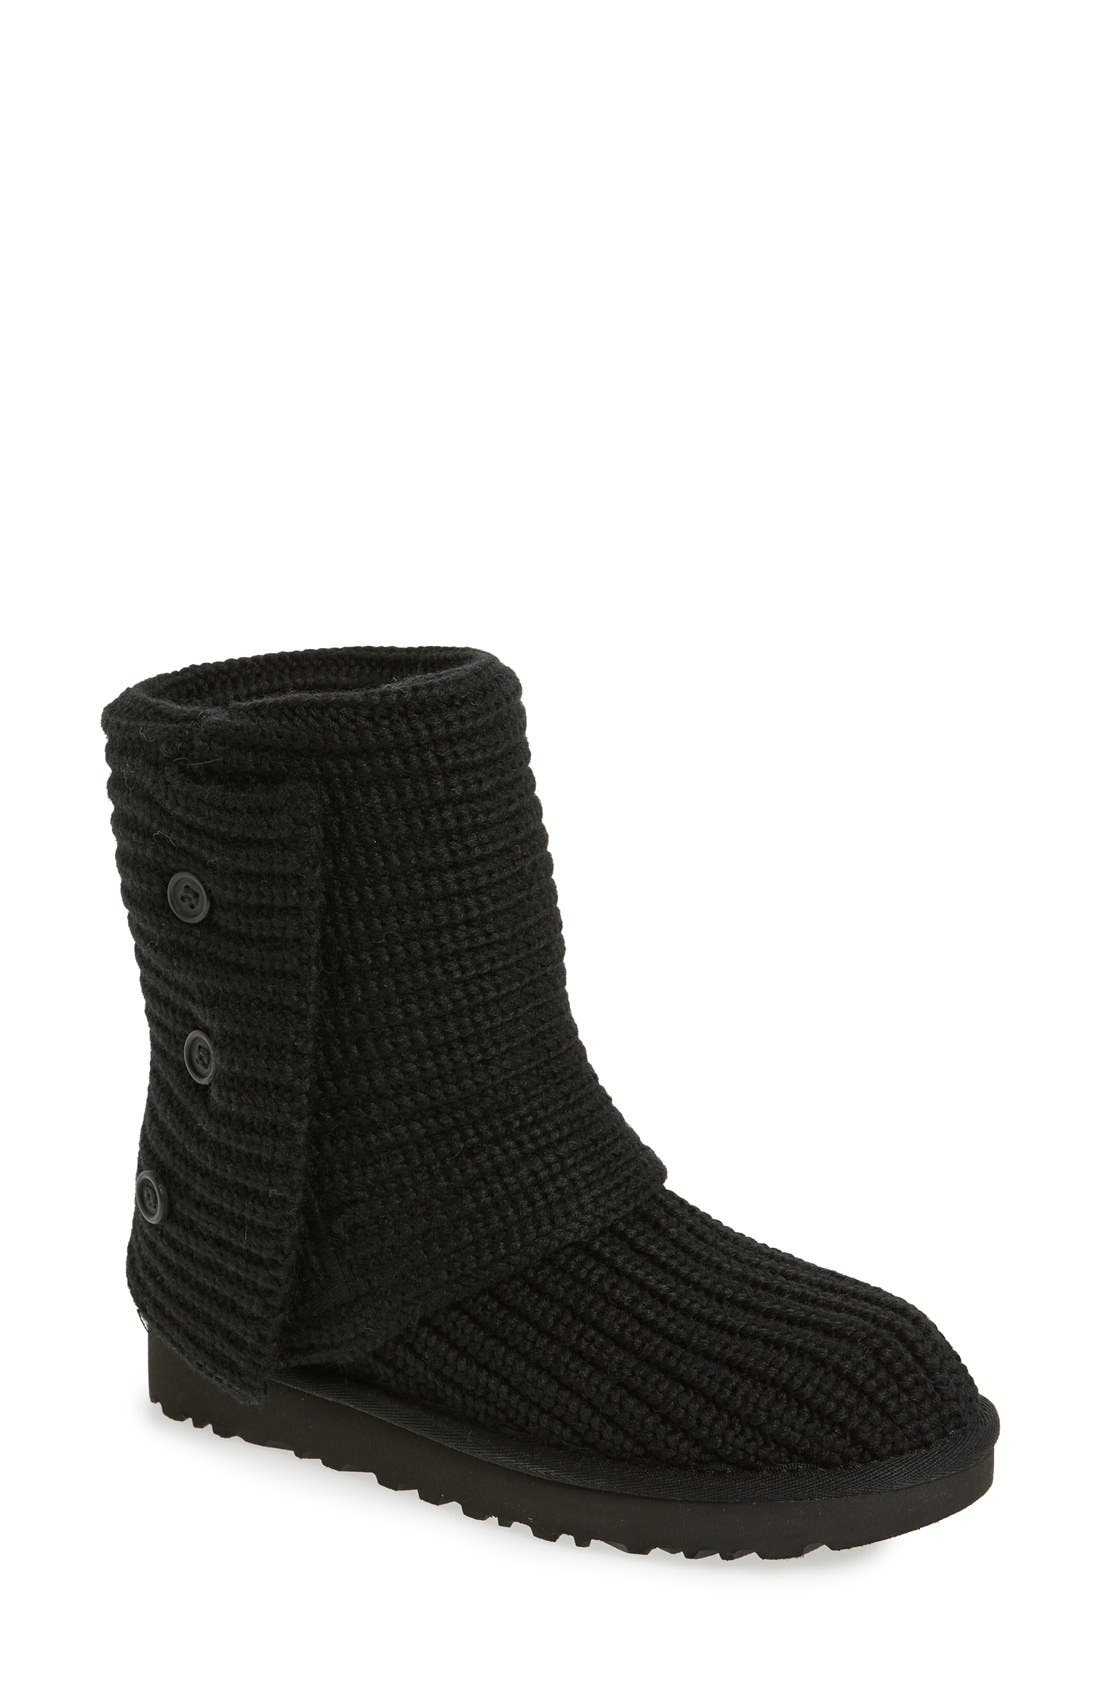 Classic Cardy II Knit Boot,                         Main,                         color, BLACK FABRIC